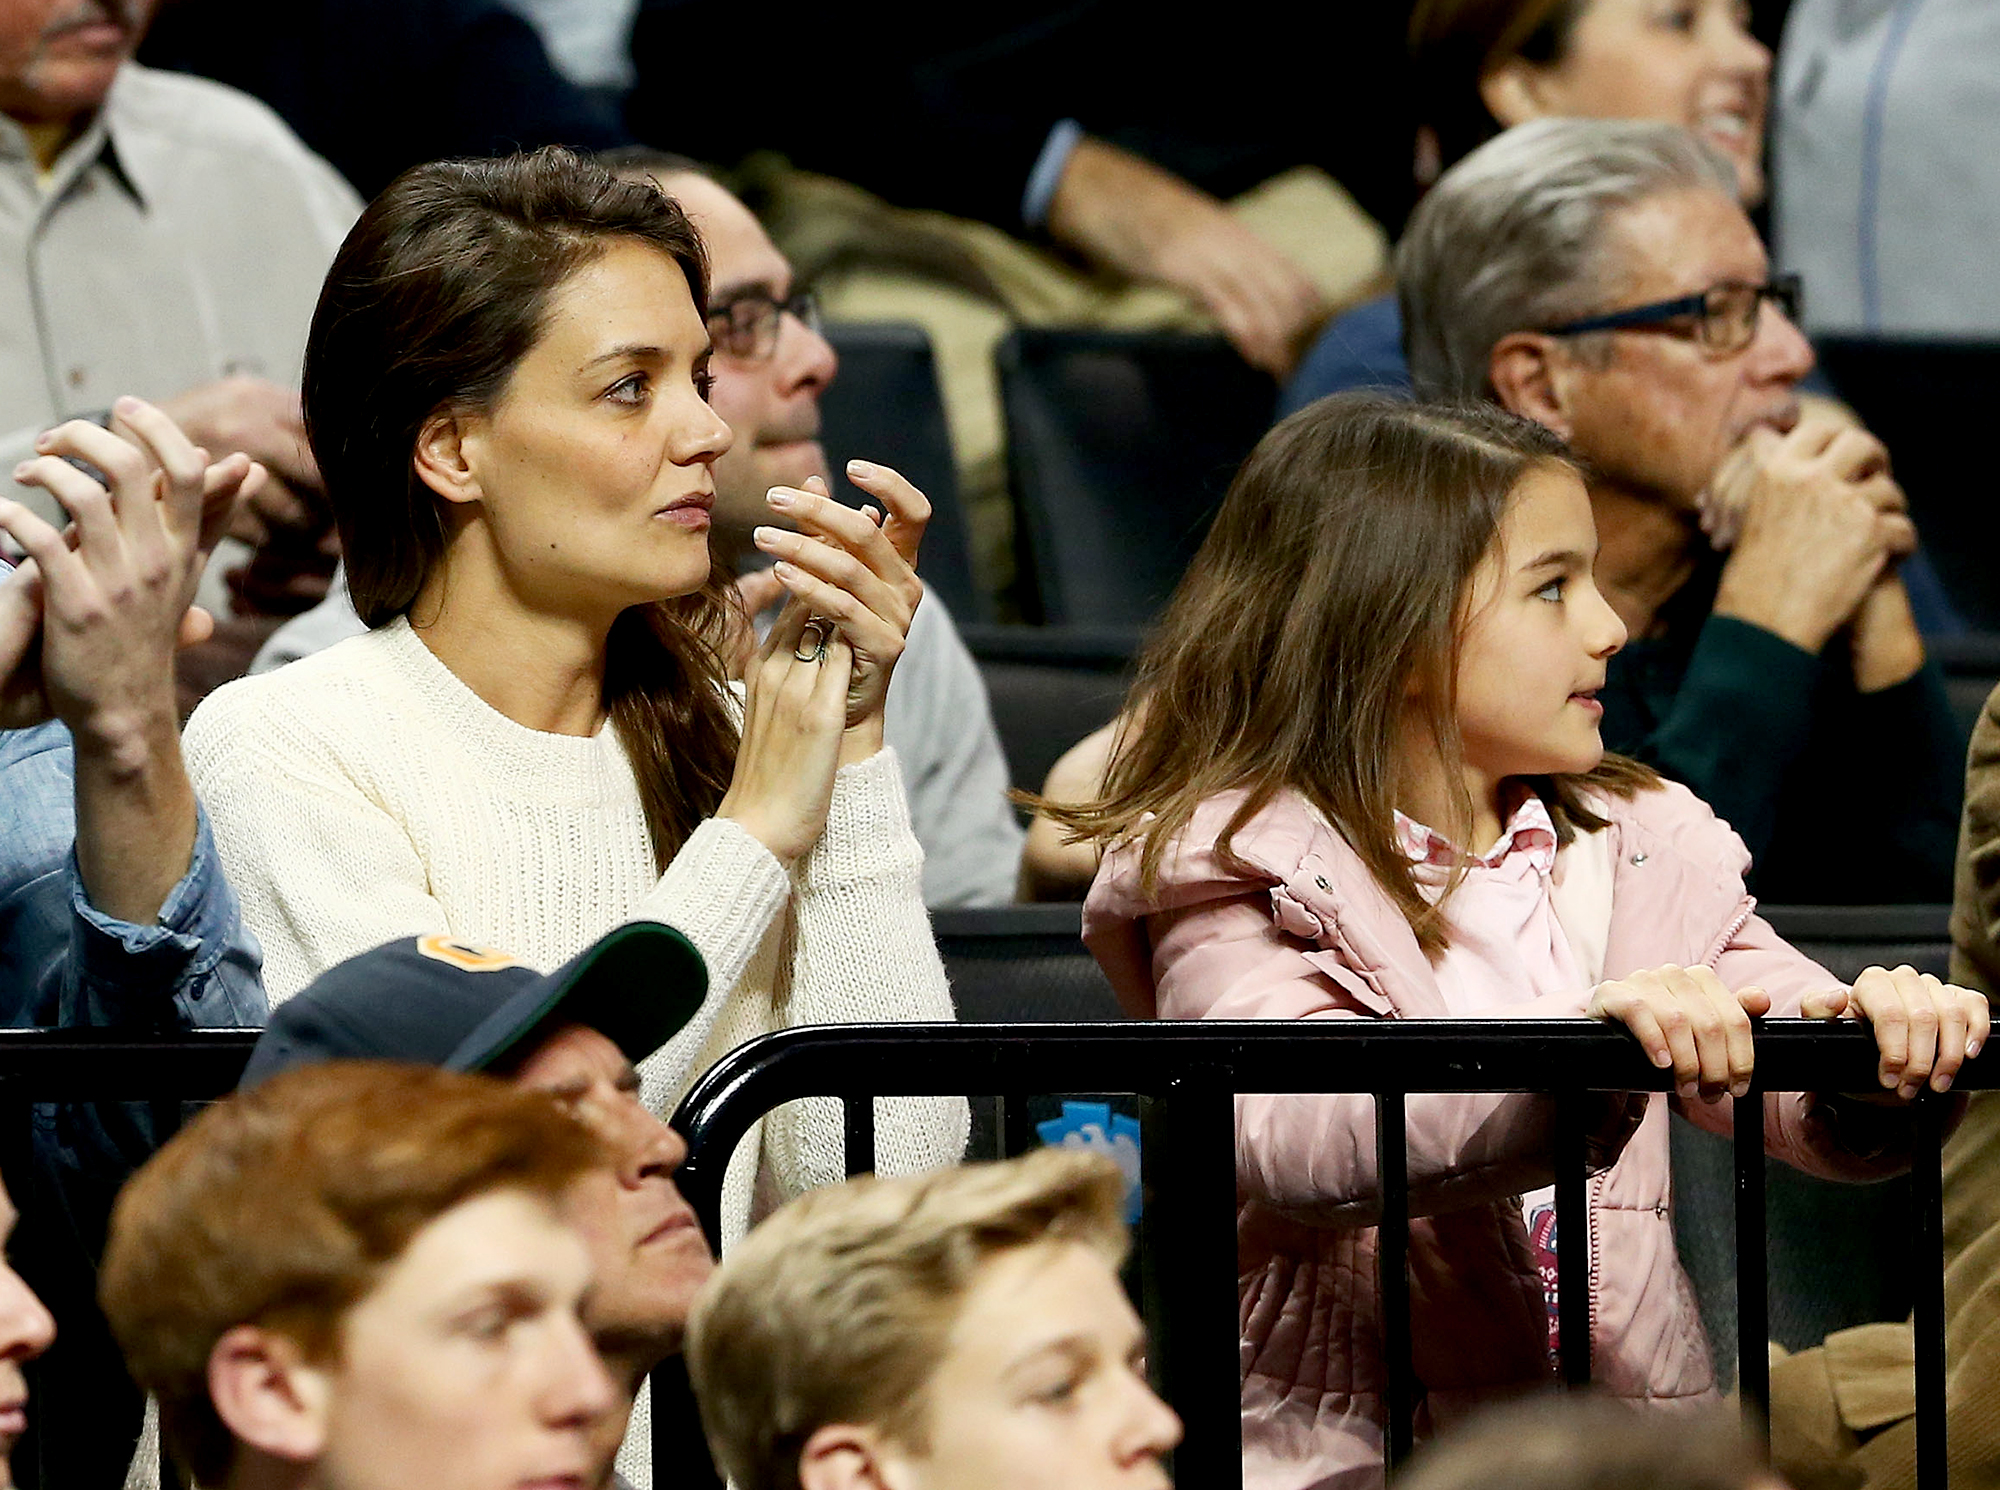 katie-holmes-suri-cruiseSports-Fan - Suri looked pretty in pink as she watched a Notre Dame basketball game inside Brooklyn's Barclays Center with her mother in March 2016.